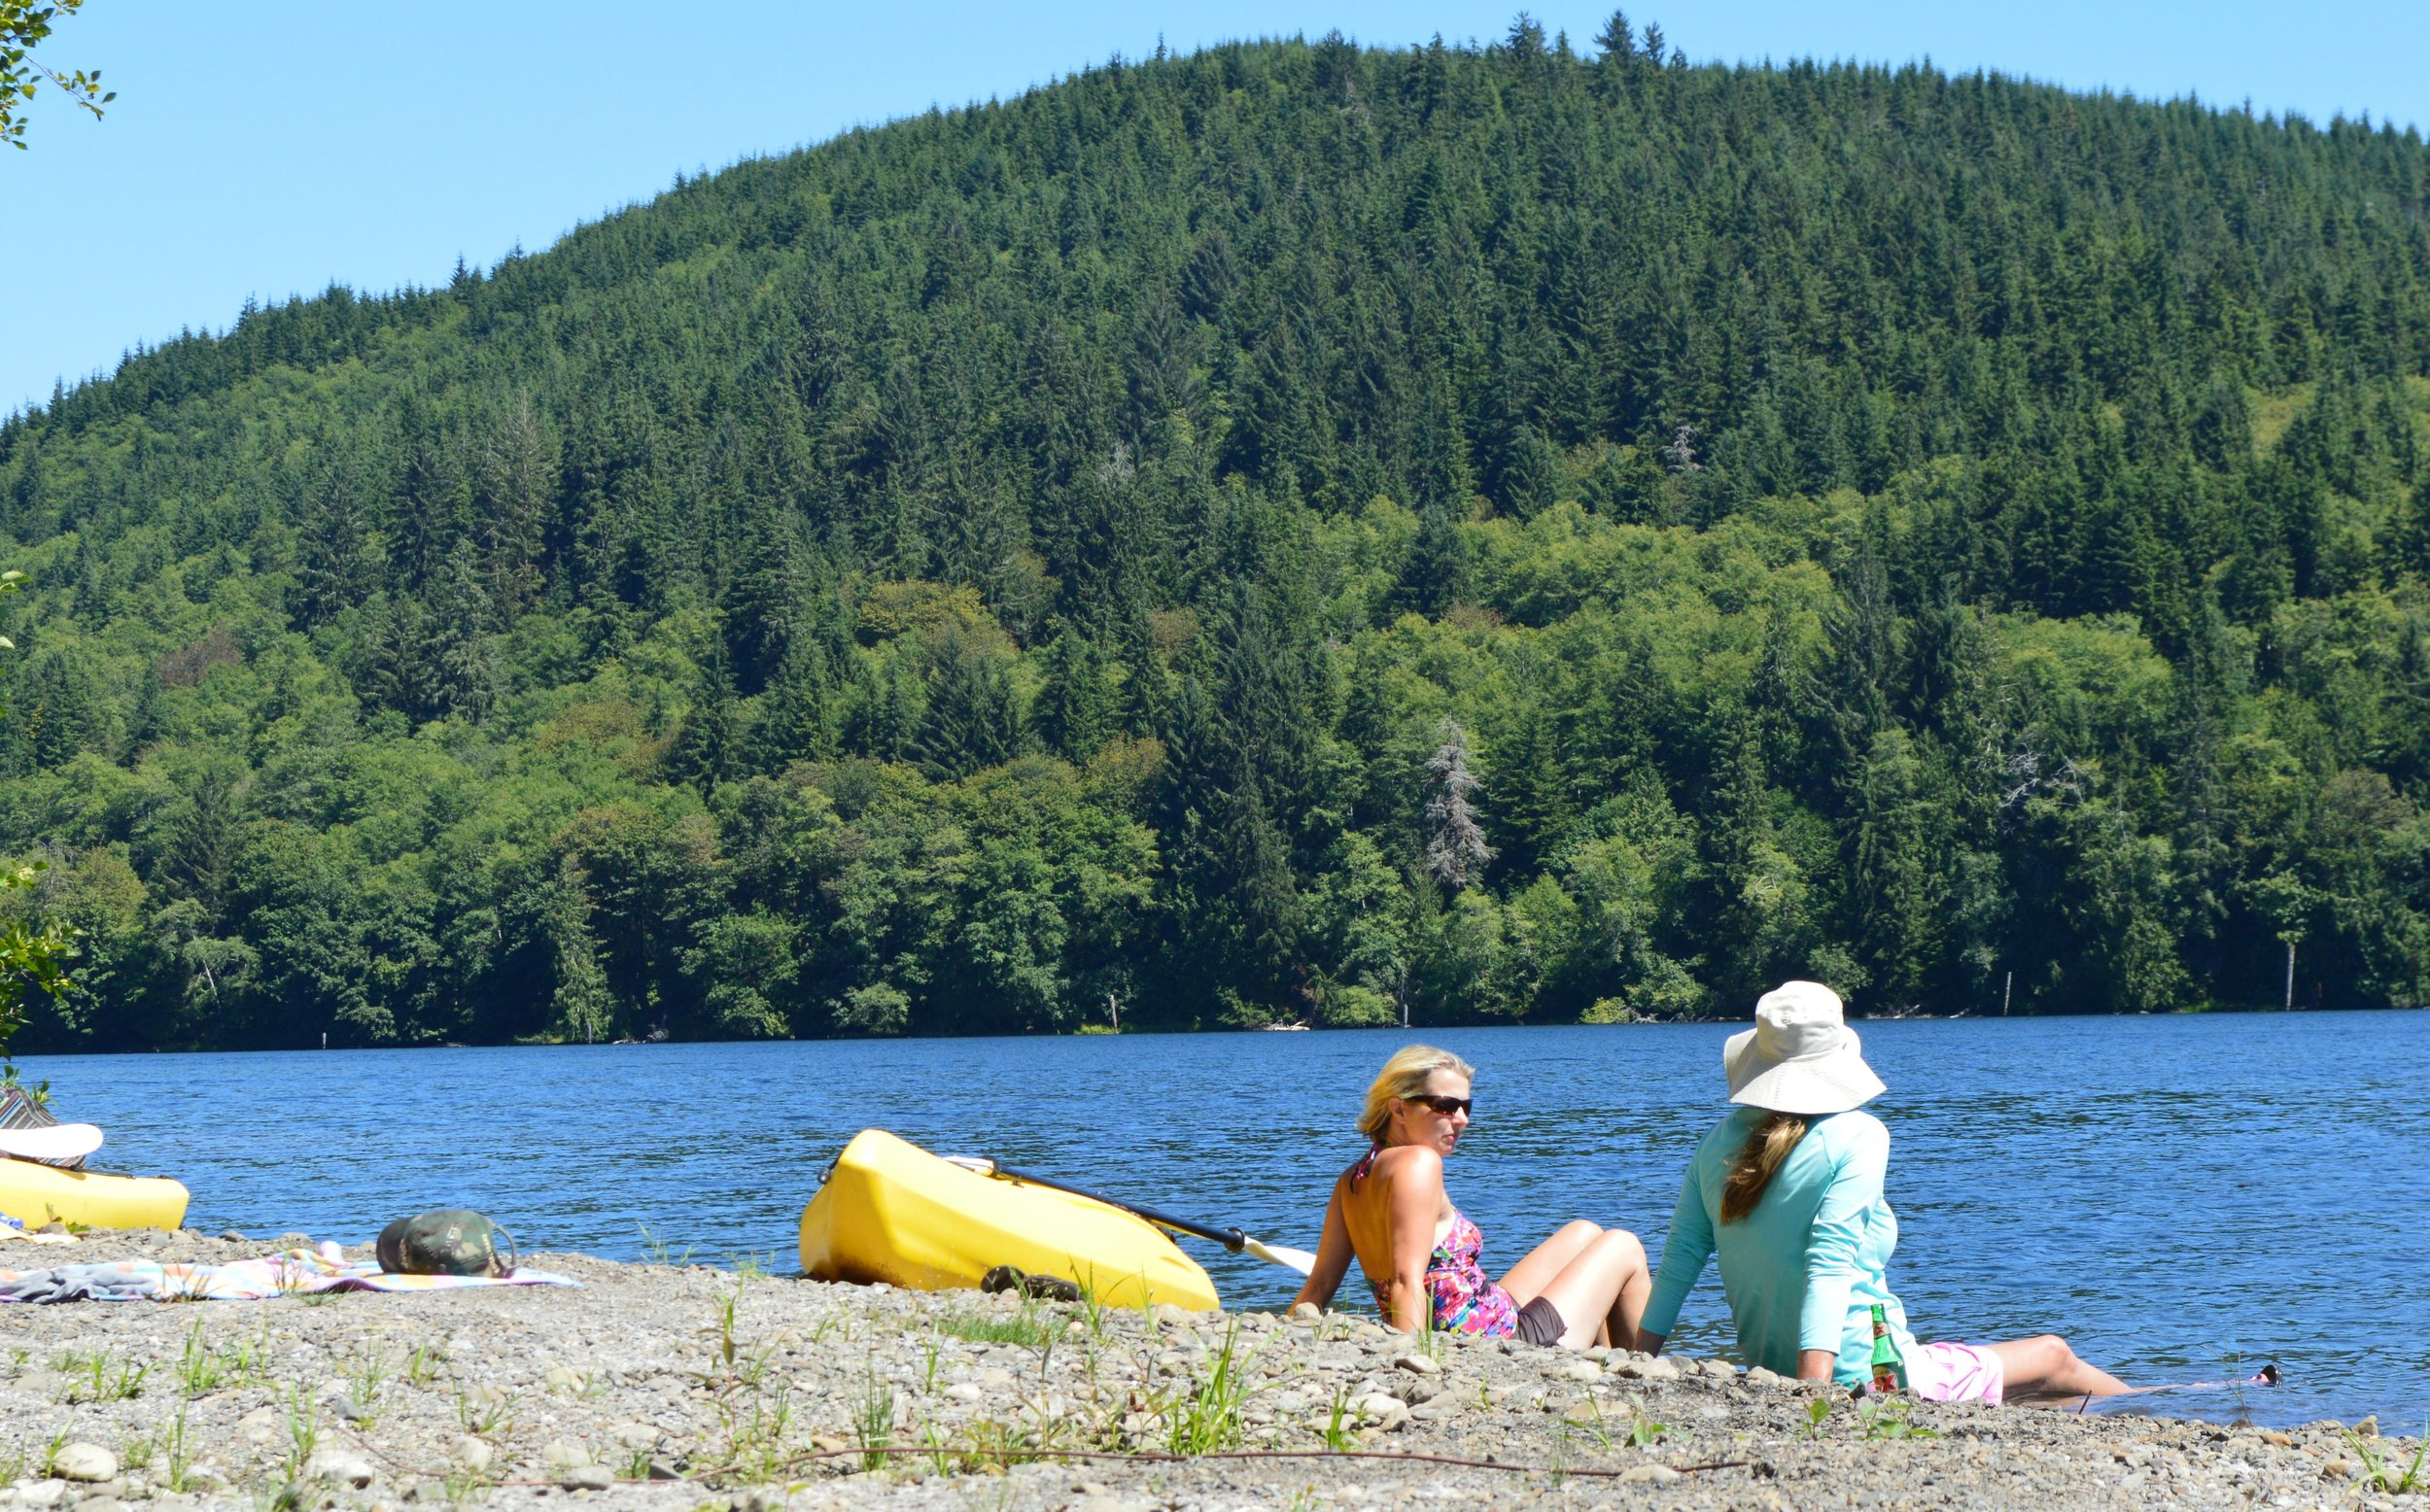 kayak-lake-pleasant-washington.jpg